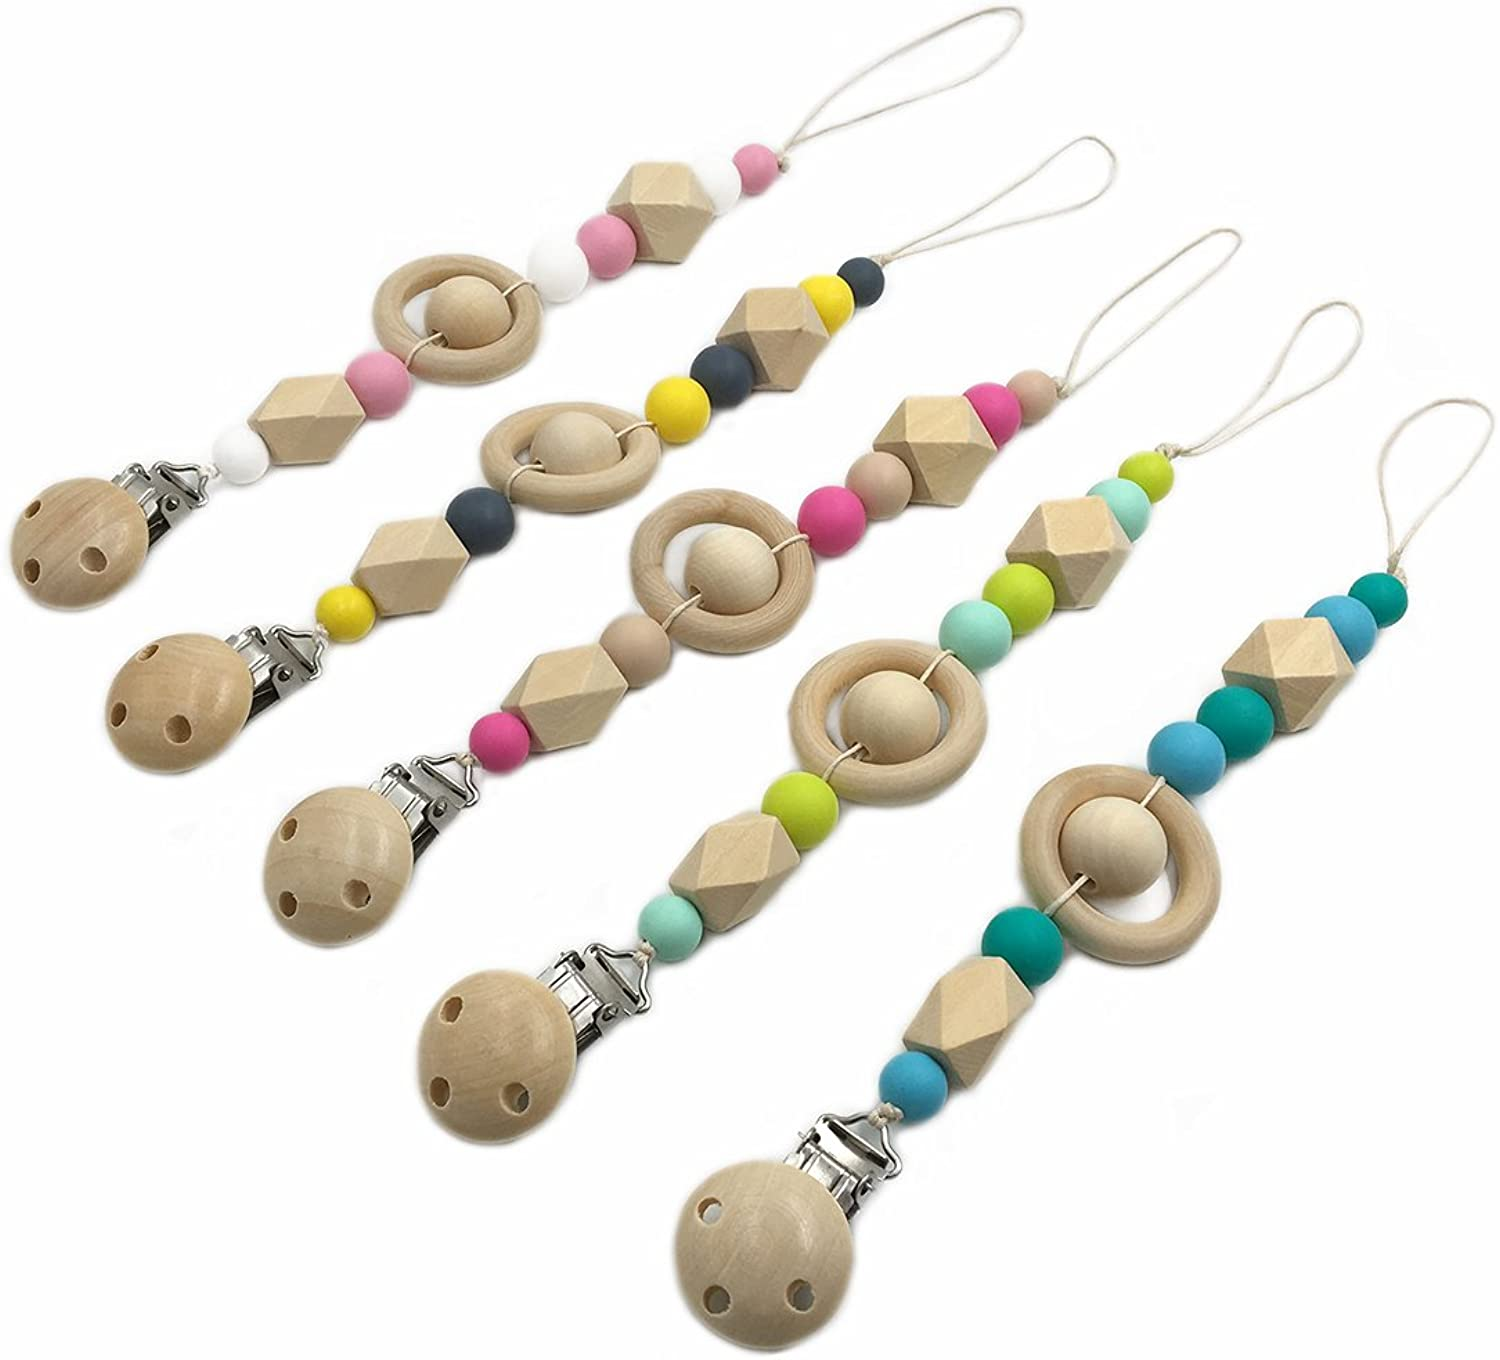 Amyster 5pcs Pacifier Clip Wooden Organic and Silicone Beads Rattle Holder Chewable Baby Accessories Pendant (5pcs)